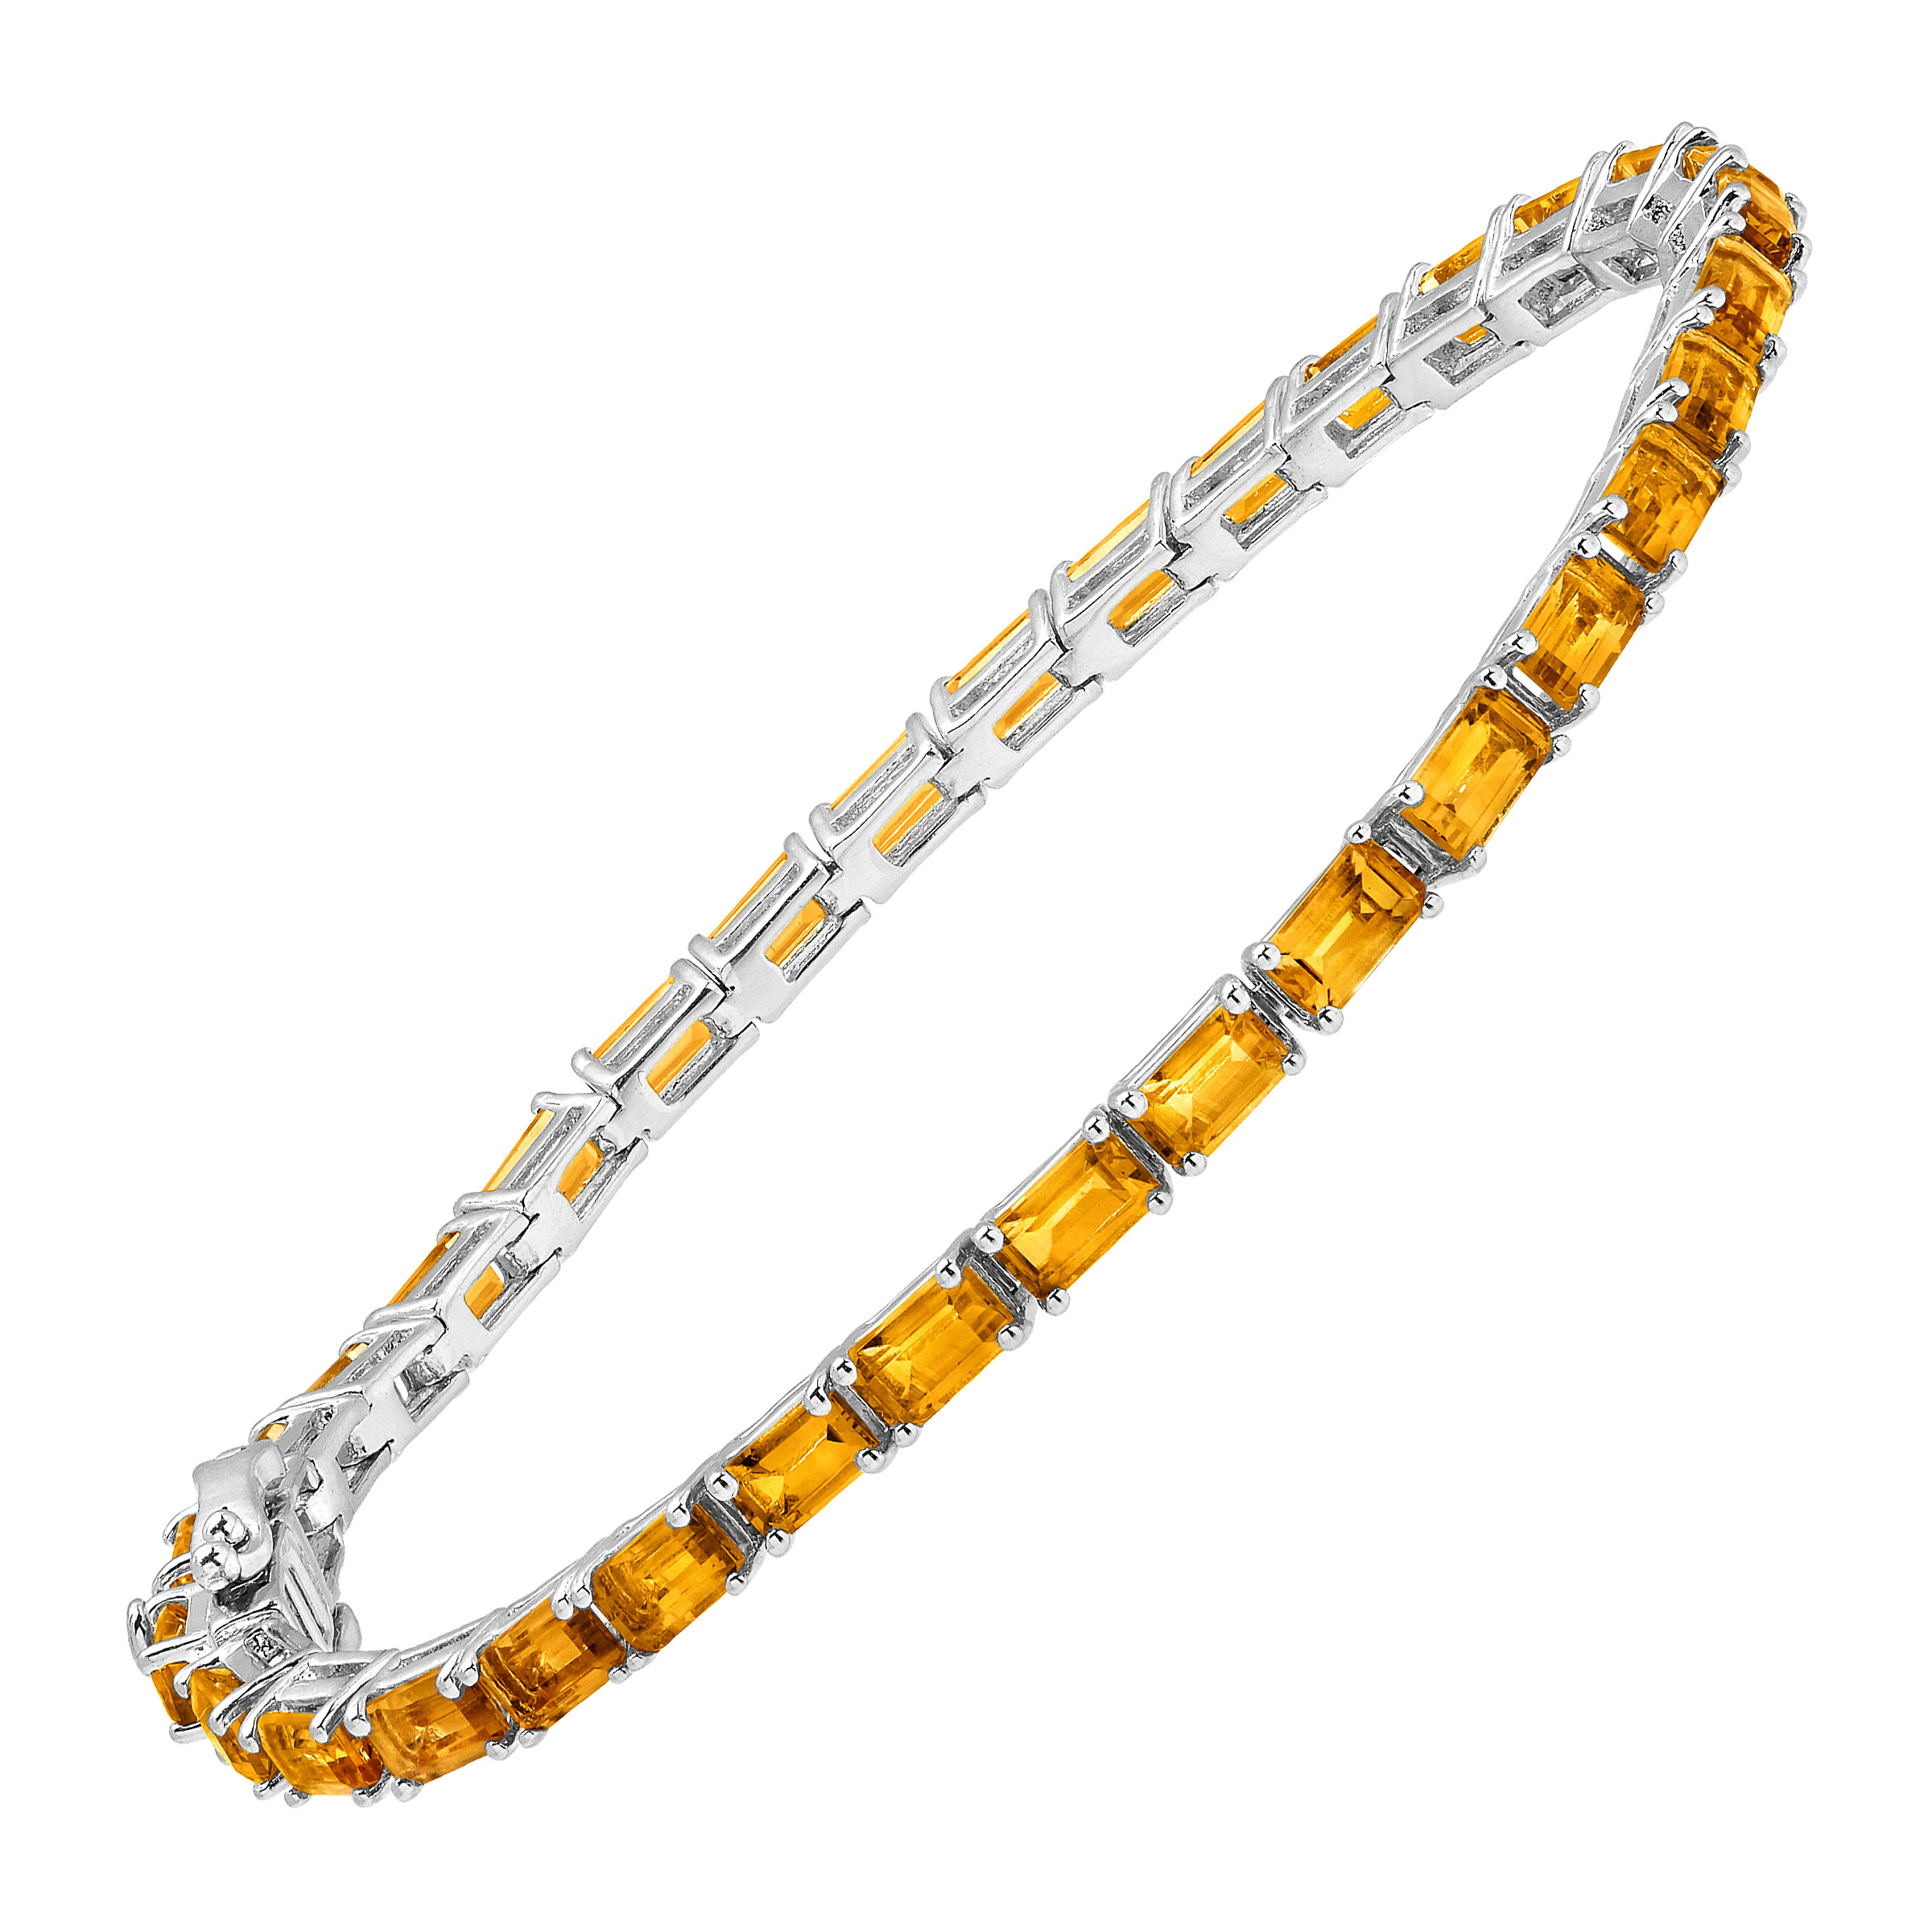 5 7 8 ct Natural Citrine Emerald-Cut Tennis Bracelet in Sterling Silver by Richline Group